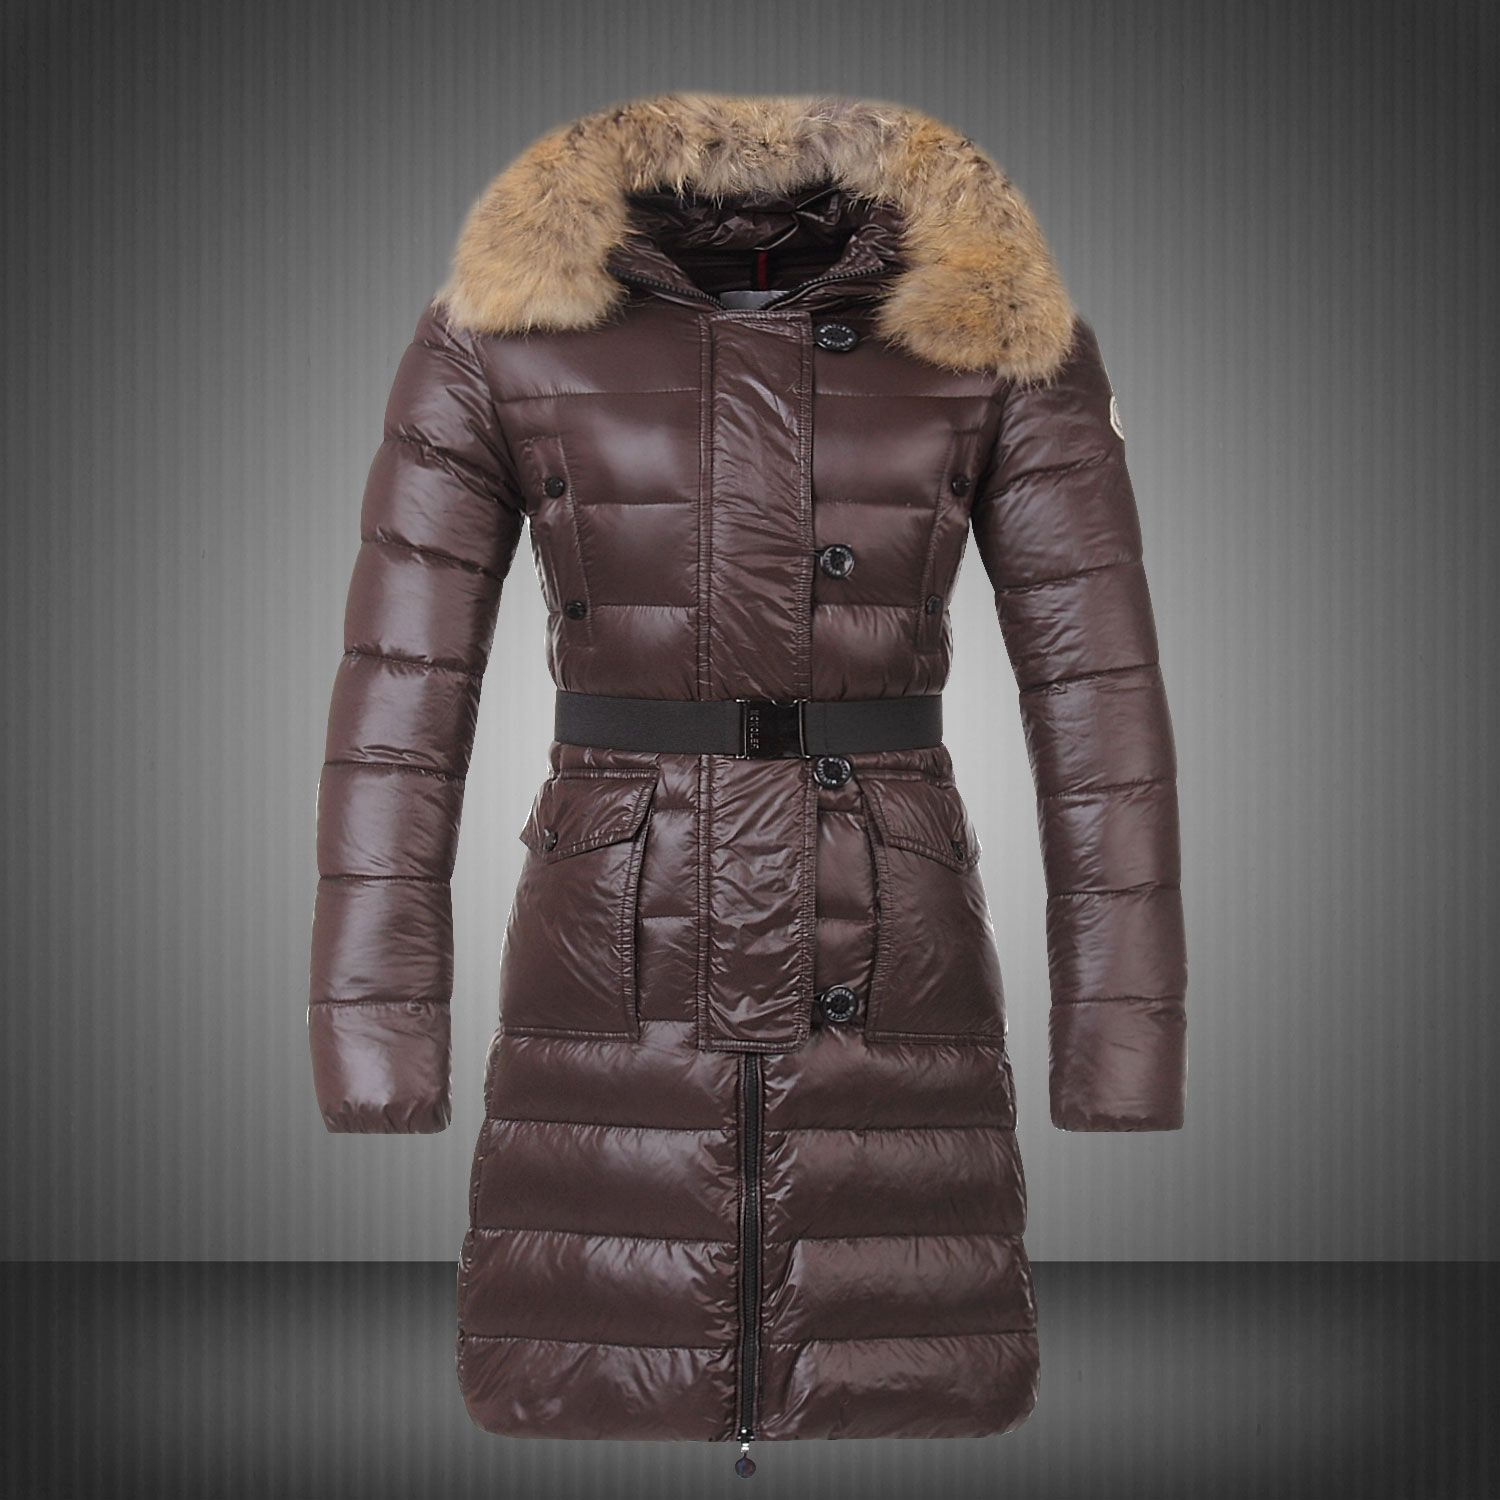 Moncler Womens Long Down Coat Cheap Moncler Jackets On